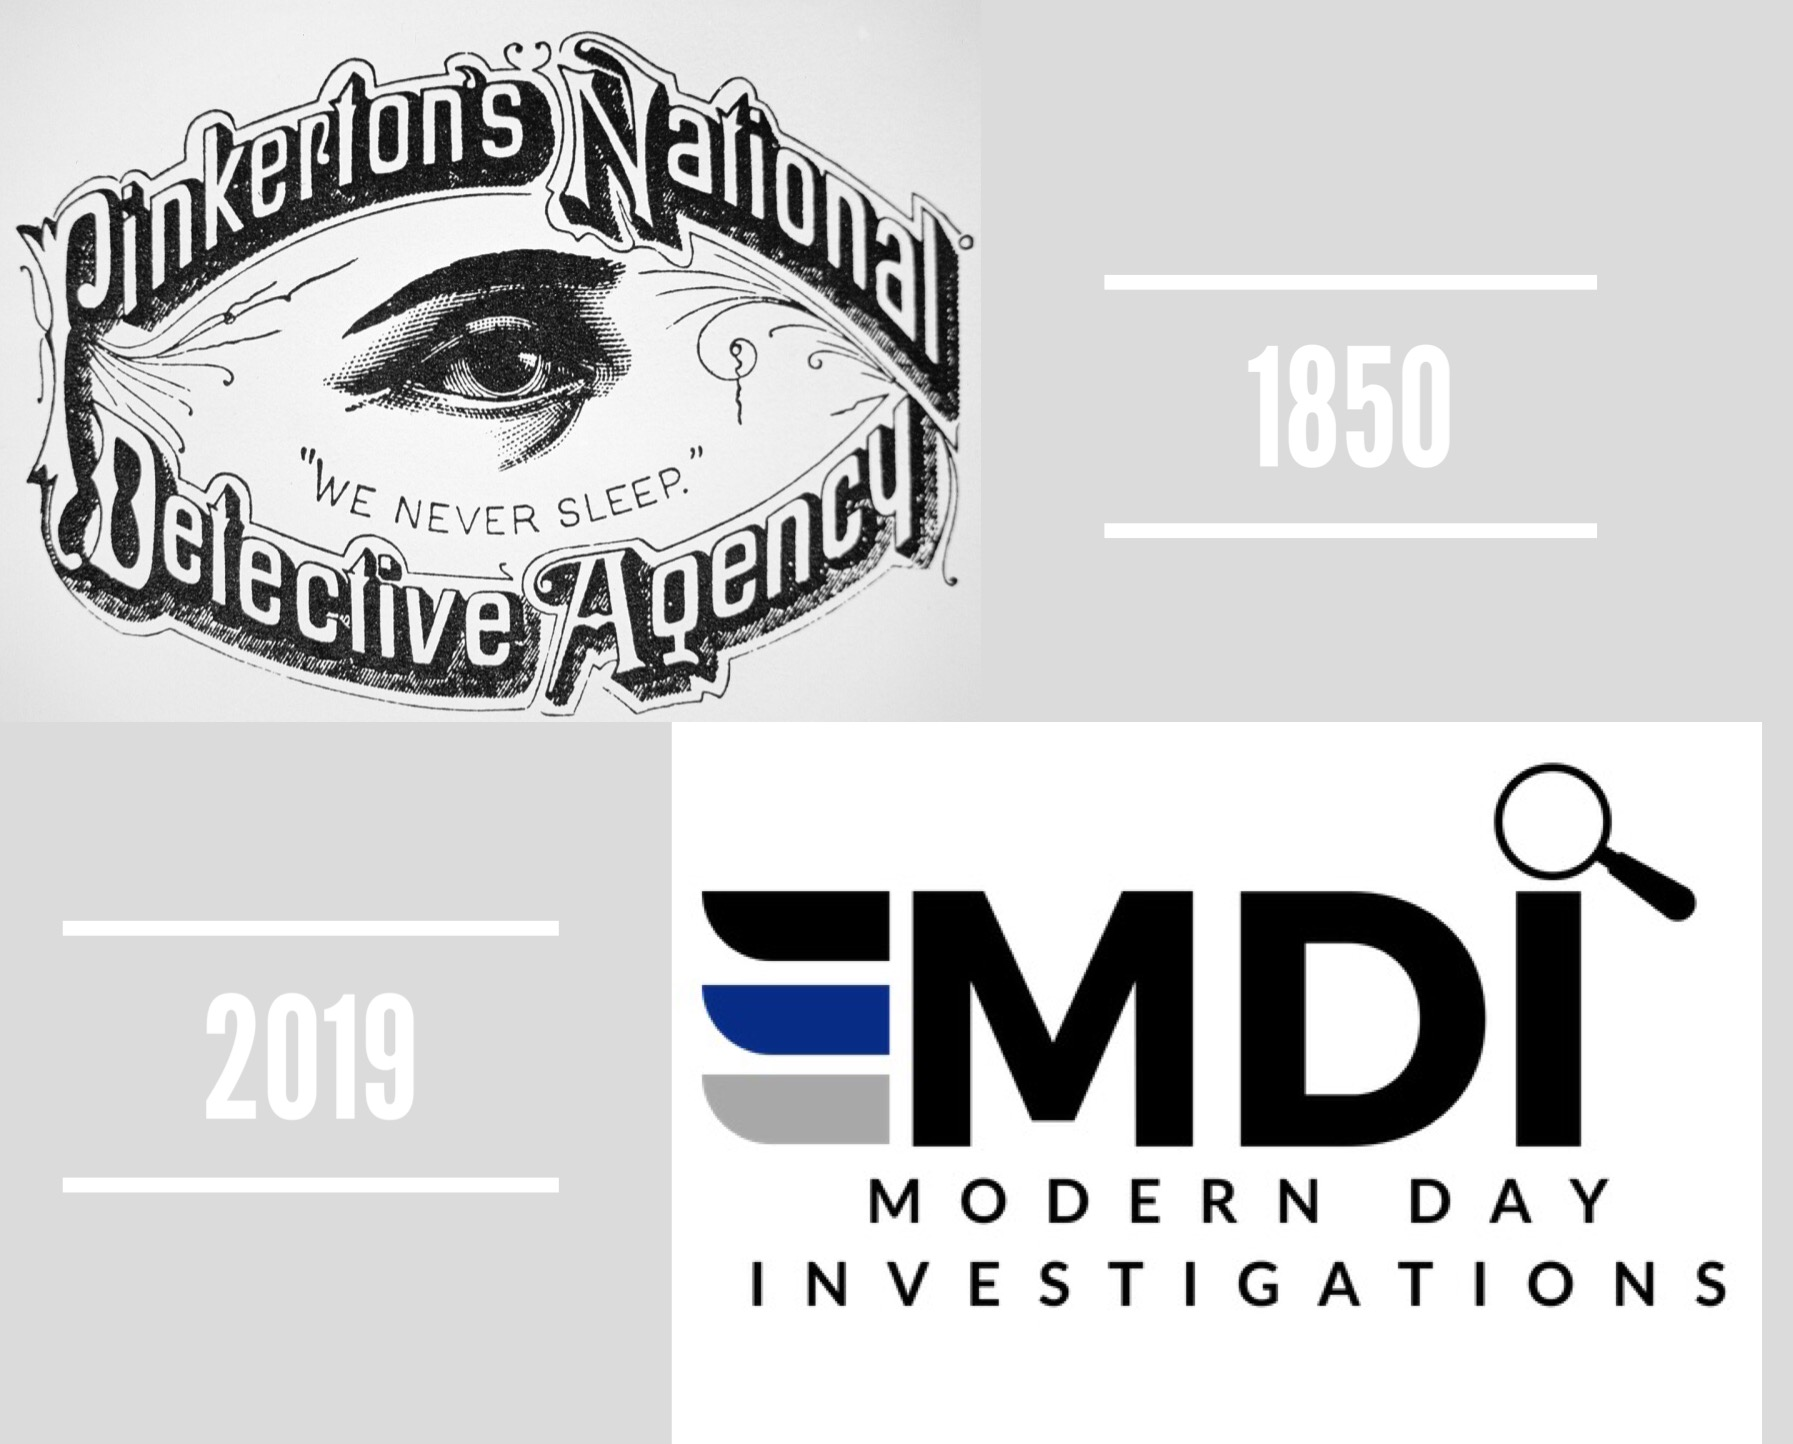 Advancing to the Modern Day Investigation Industry